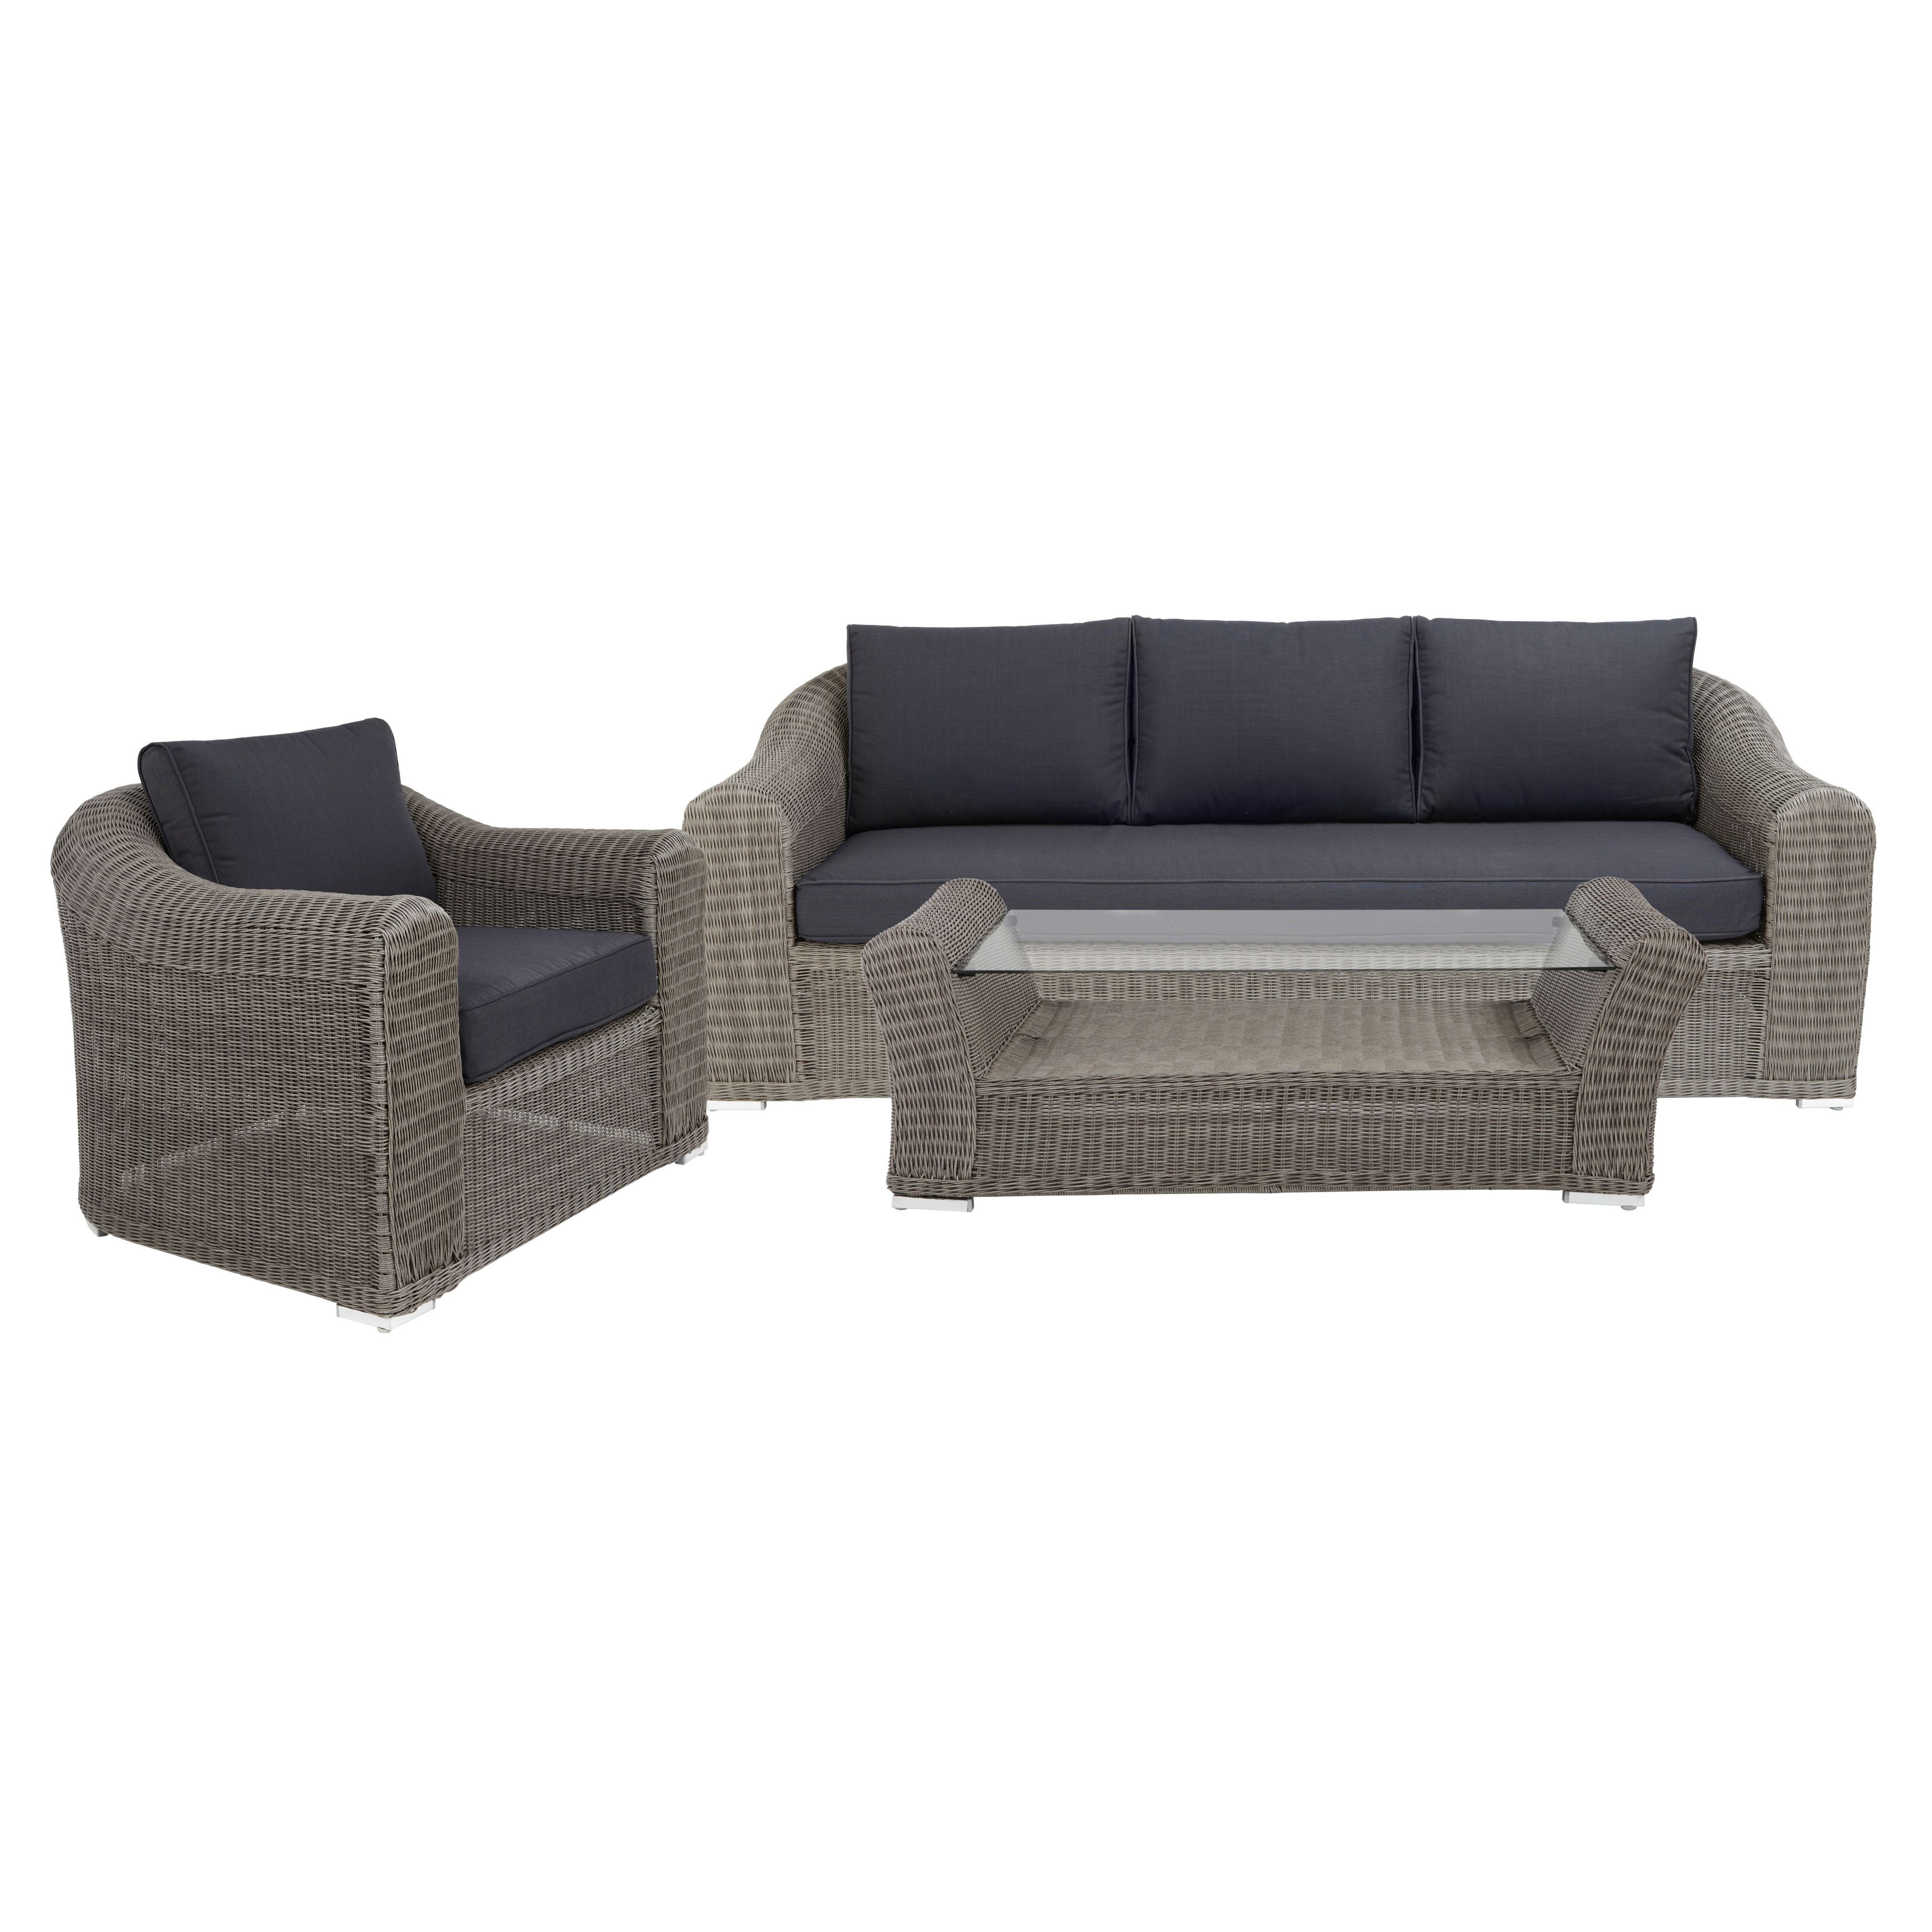 Comoro Rattan Effect 3 Seater Coffee Set Rooms Diy At B Q Seater Coffee Set Outdoor Sectional Sofa